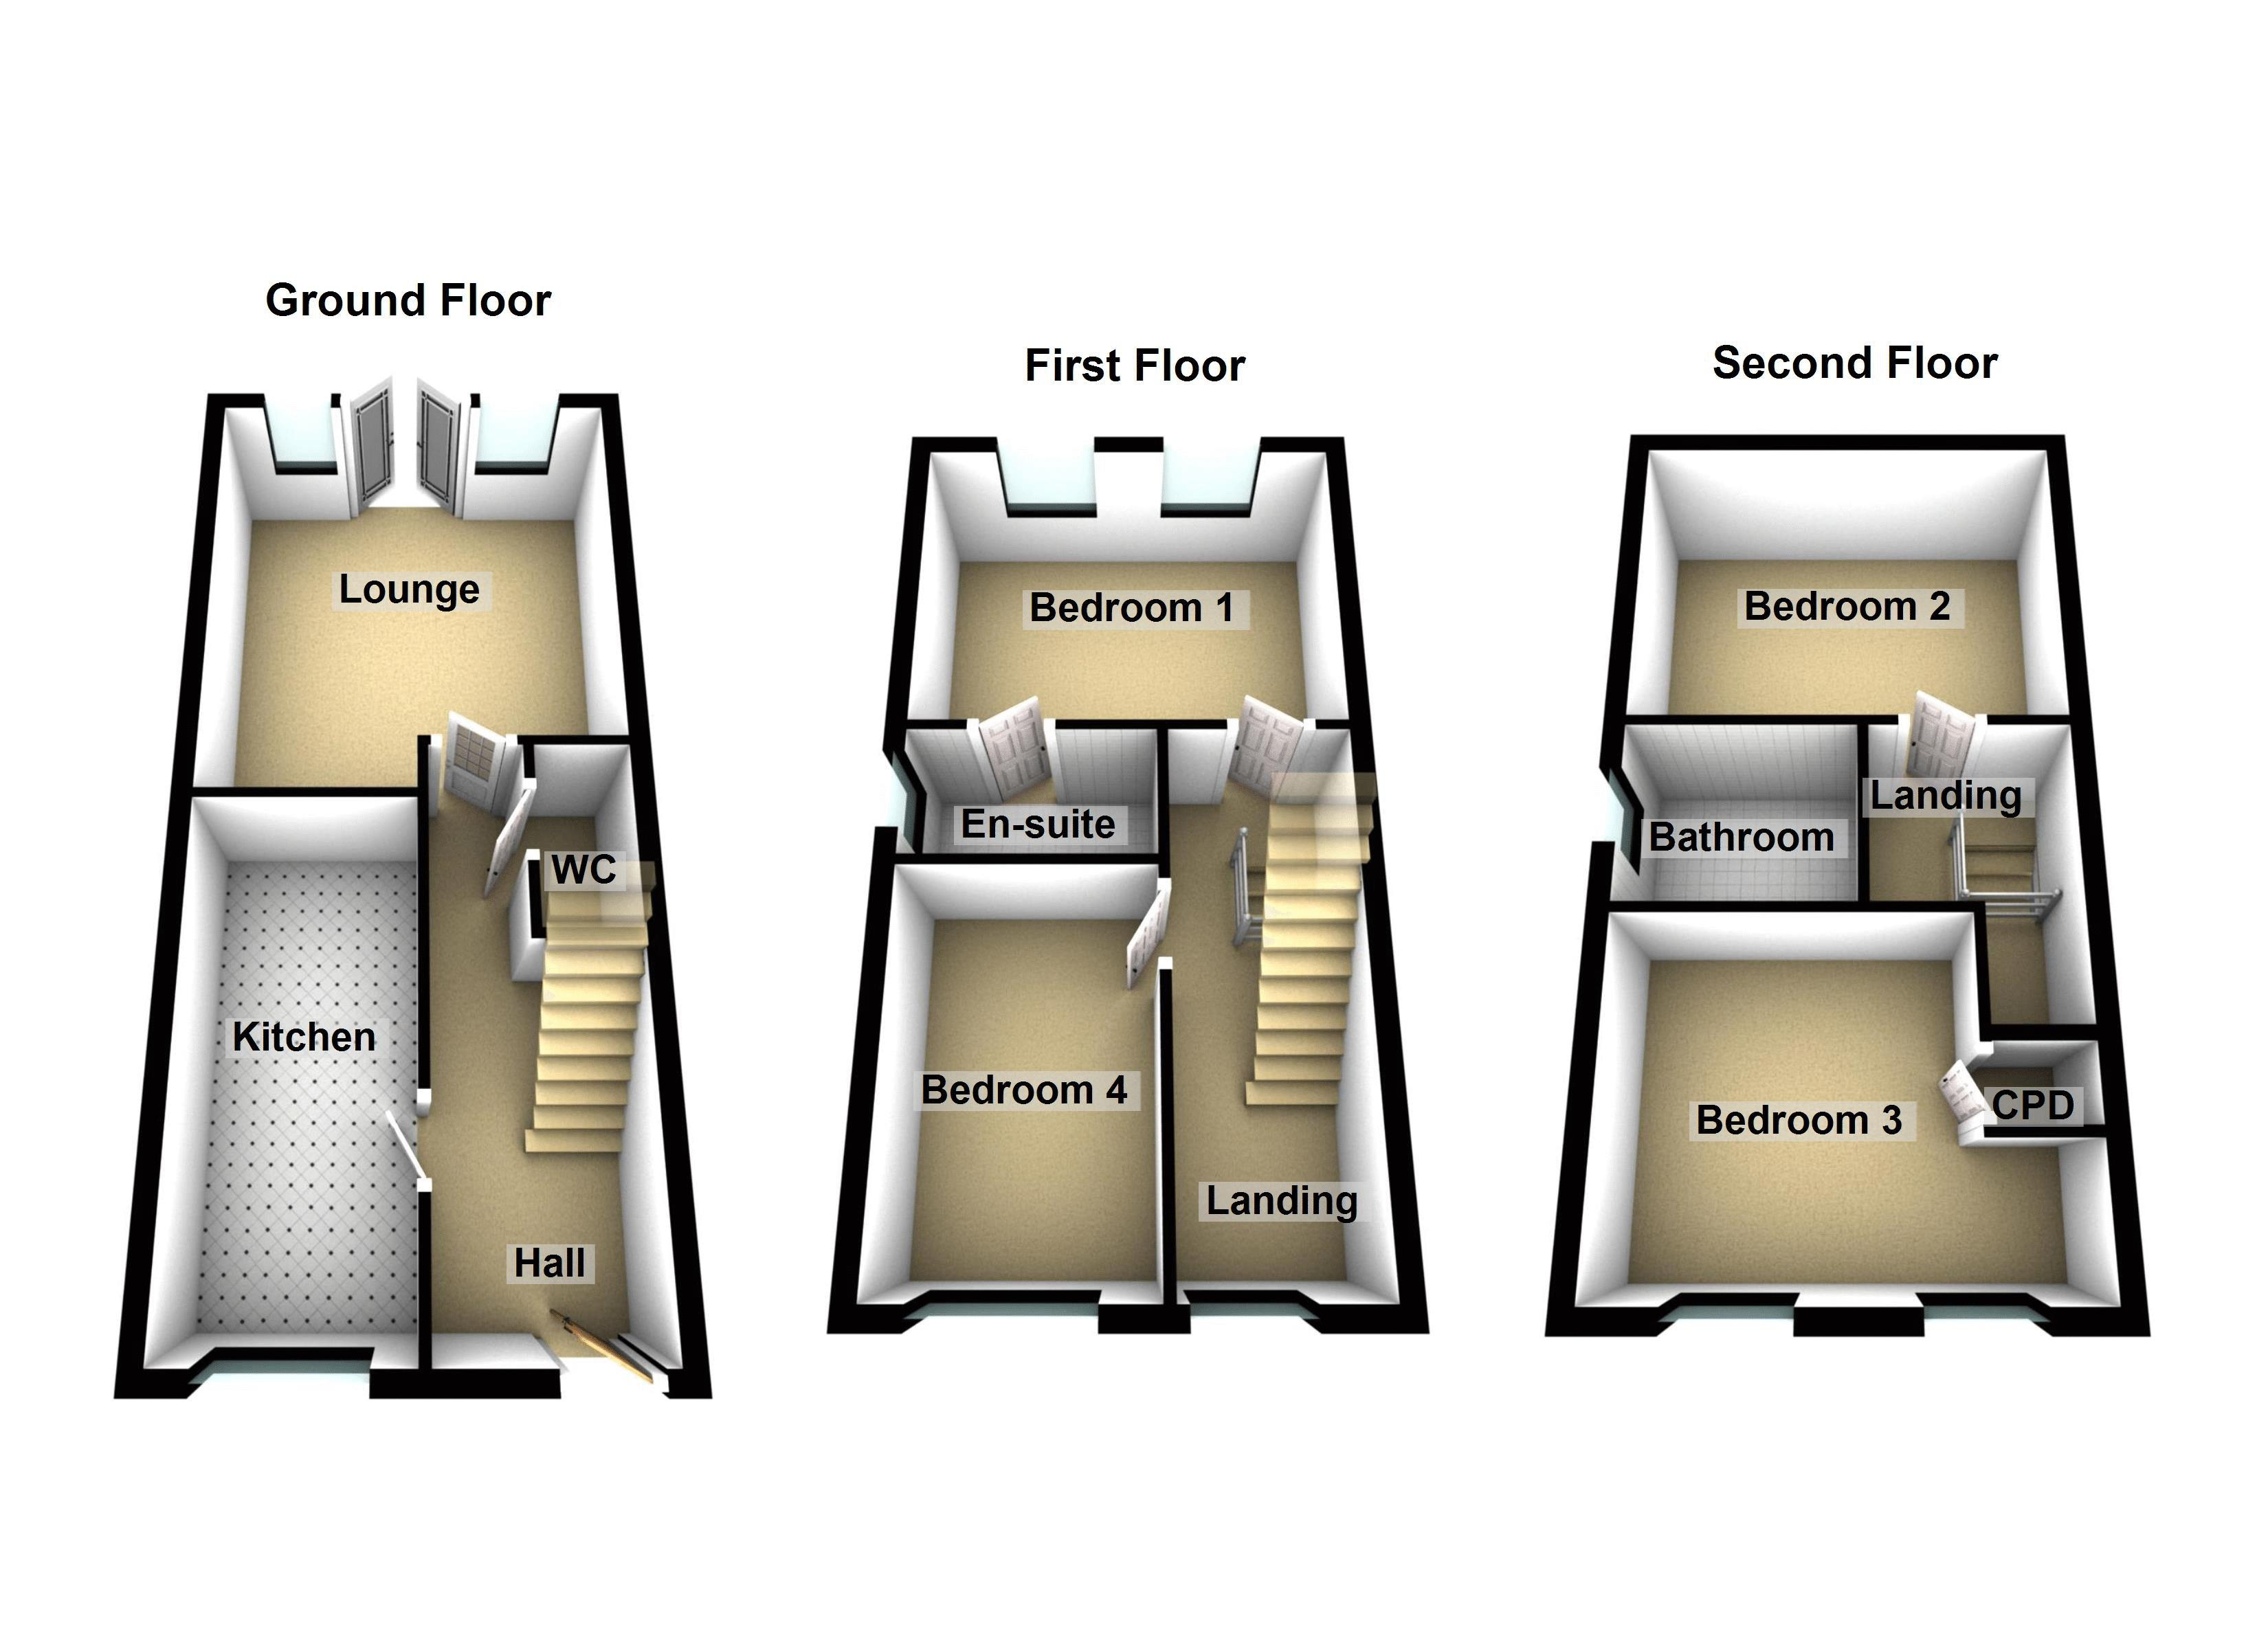 Ground / First / Second Floors